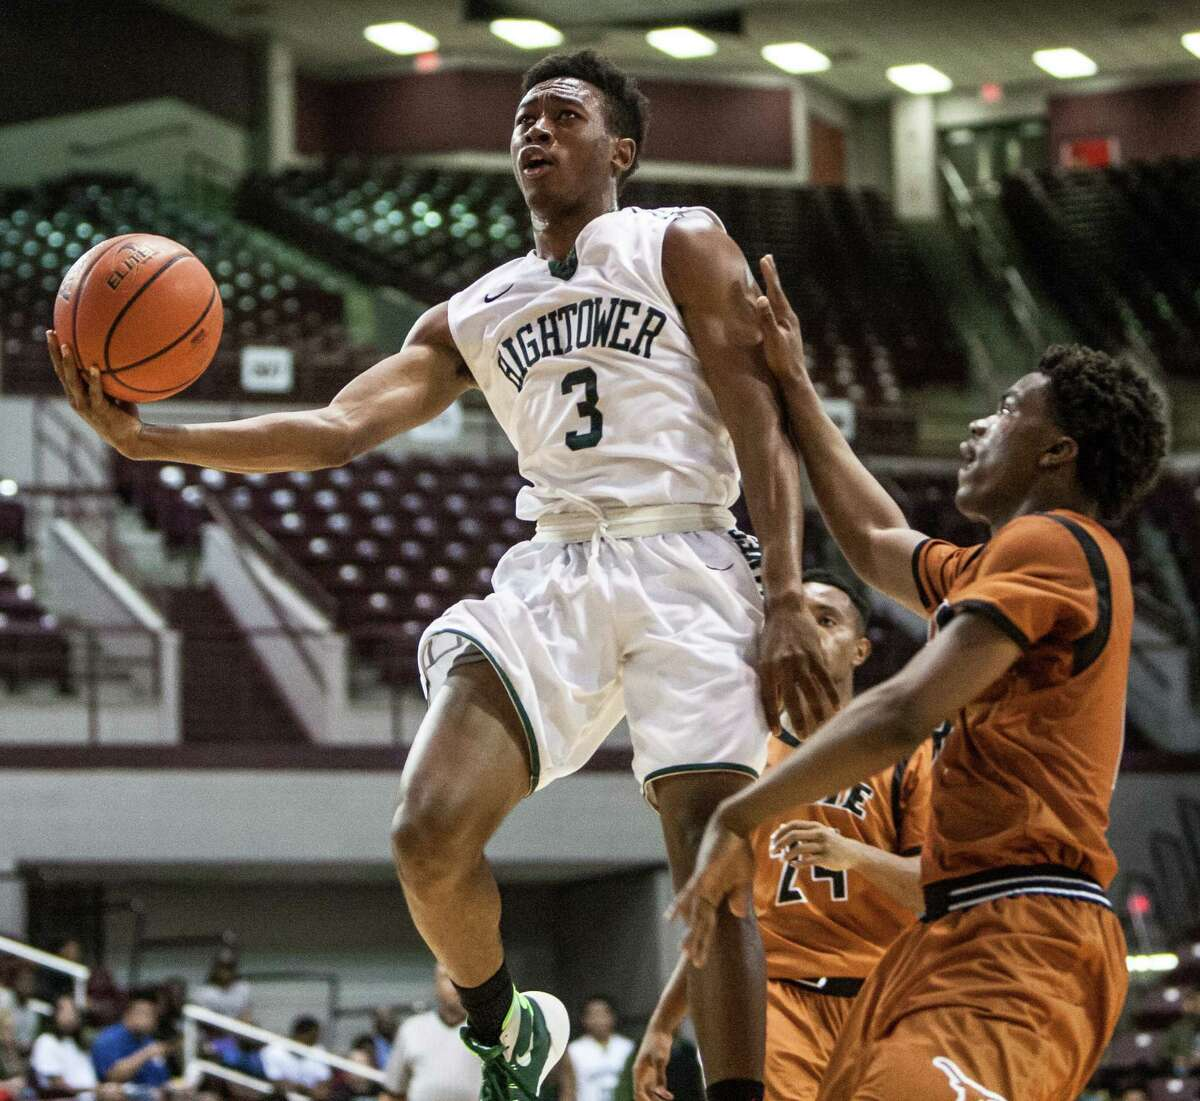 Kaelin Jackson of Hightower attempts a layup during a game Tuesday March 1, 2016. Hightower played Dobie in a boys basketball playoff game at the Campbell Center.